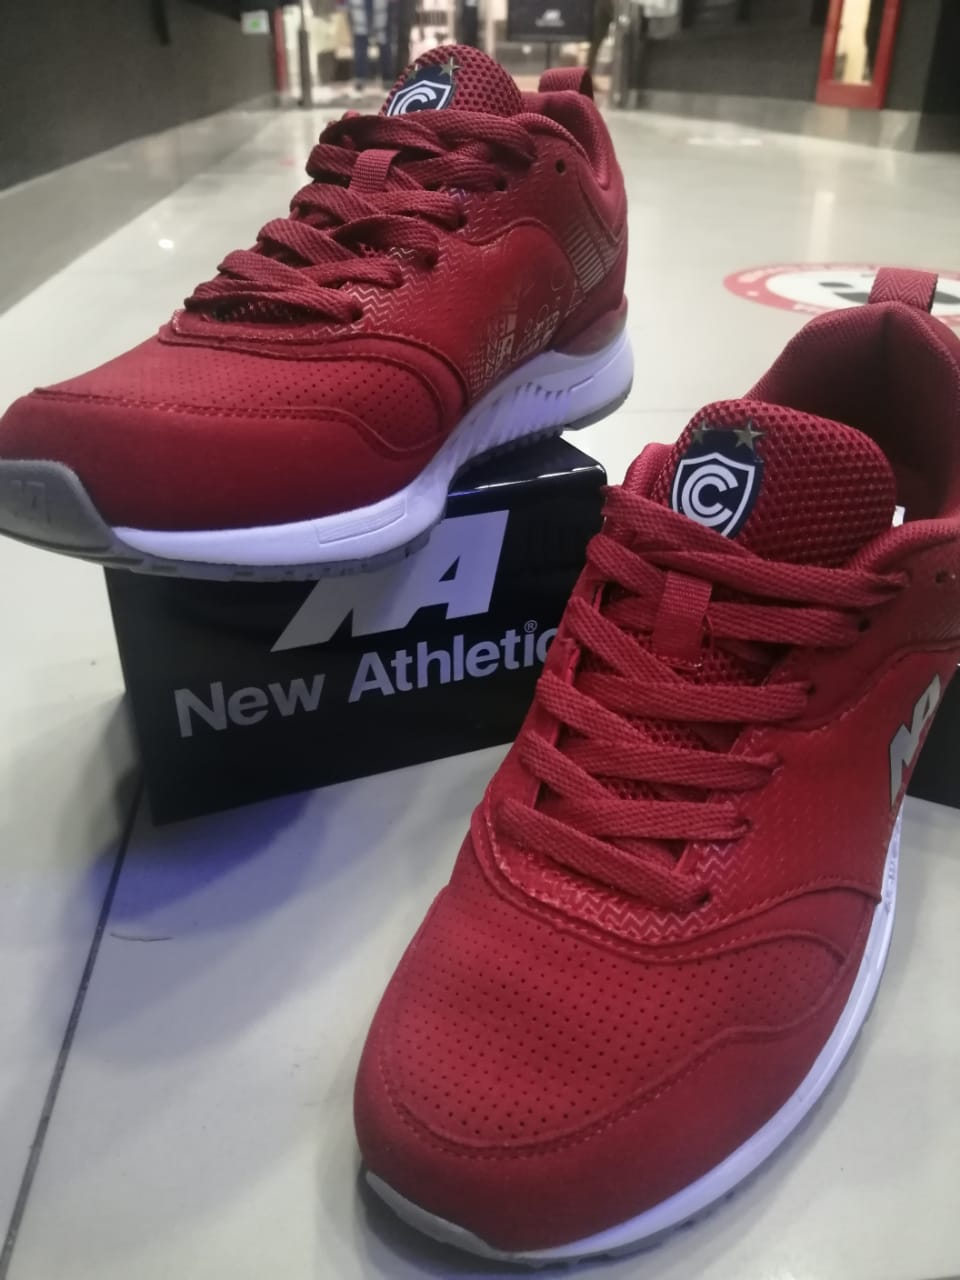 Zapatillas New Athletic Cienciano